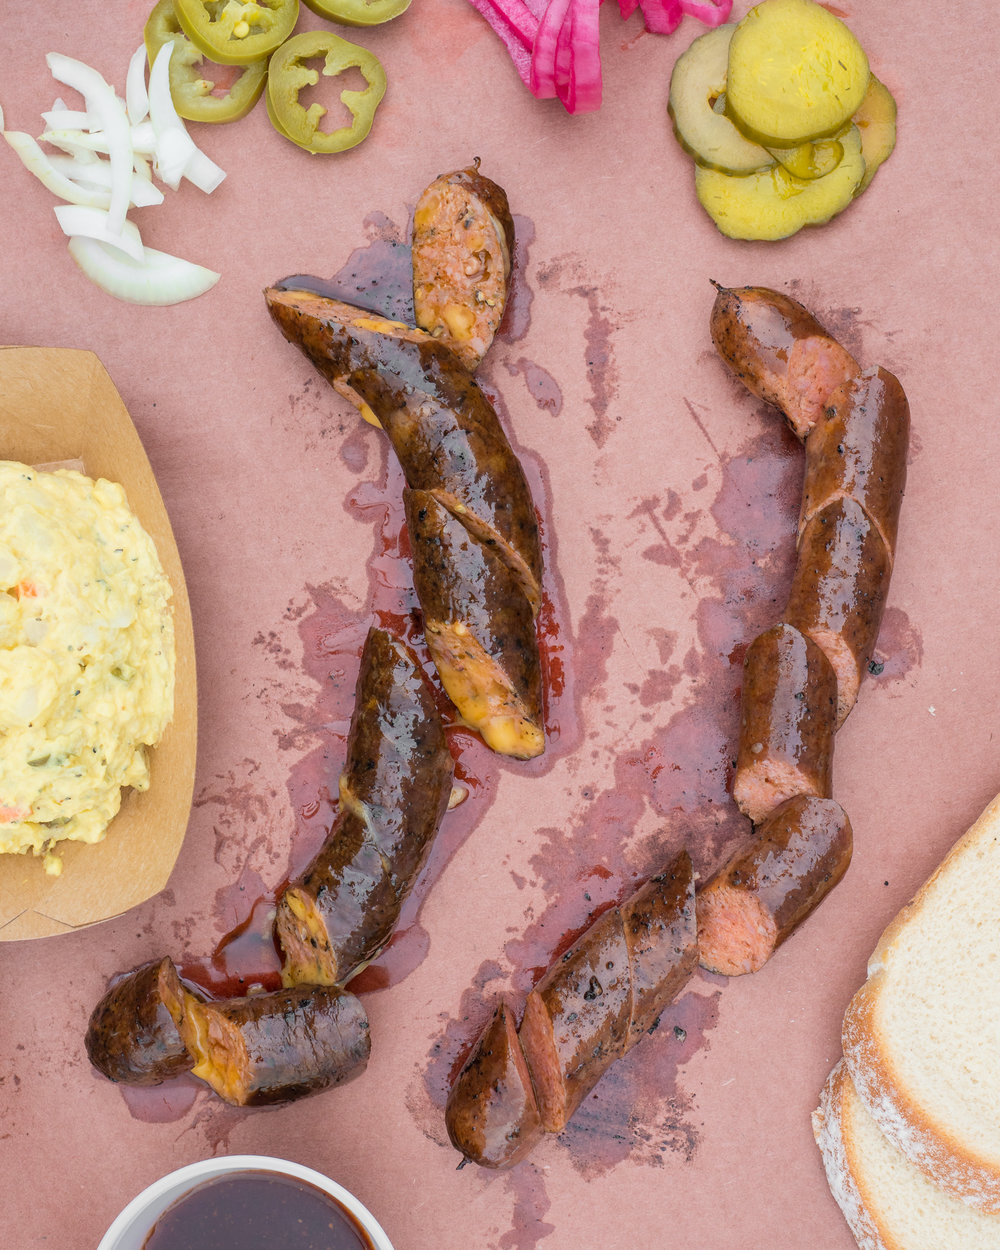 Jeremy Pawlowski Portland Texas Austin Amarillo Food Photographer Photography Fare Photo Studios bbq barbecue barbeque jalapeno sausage